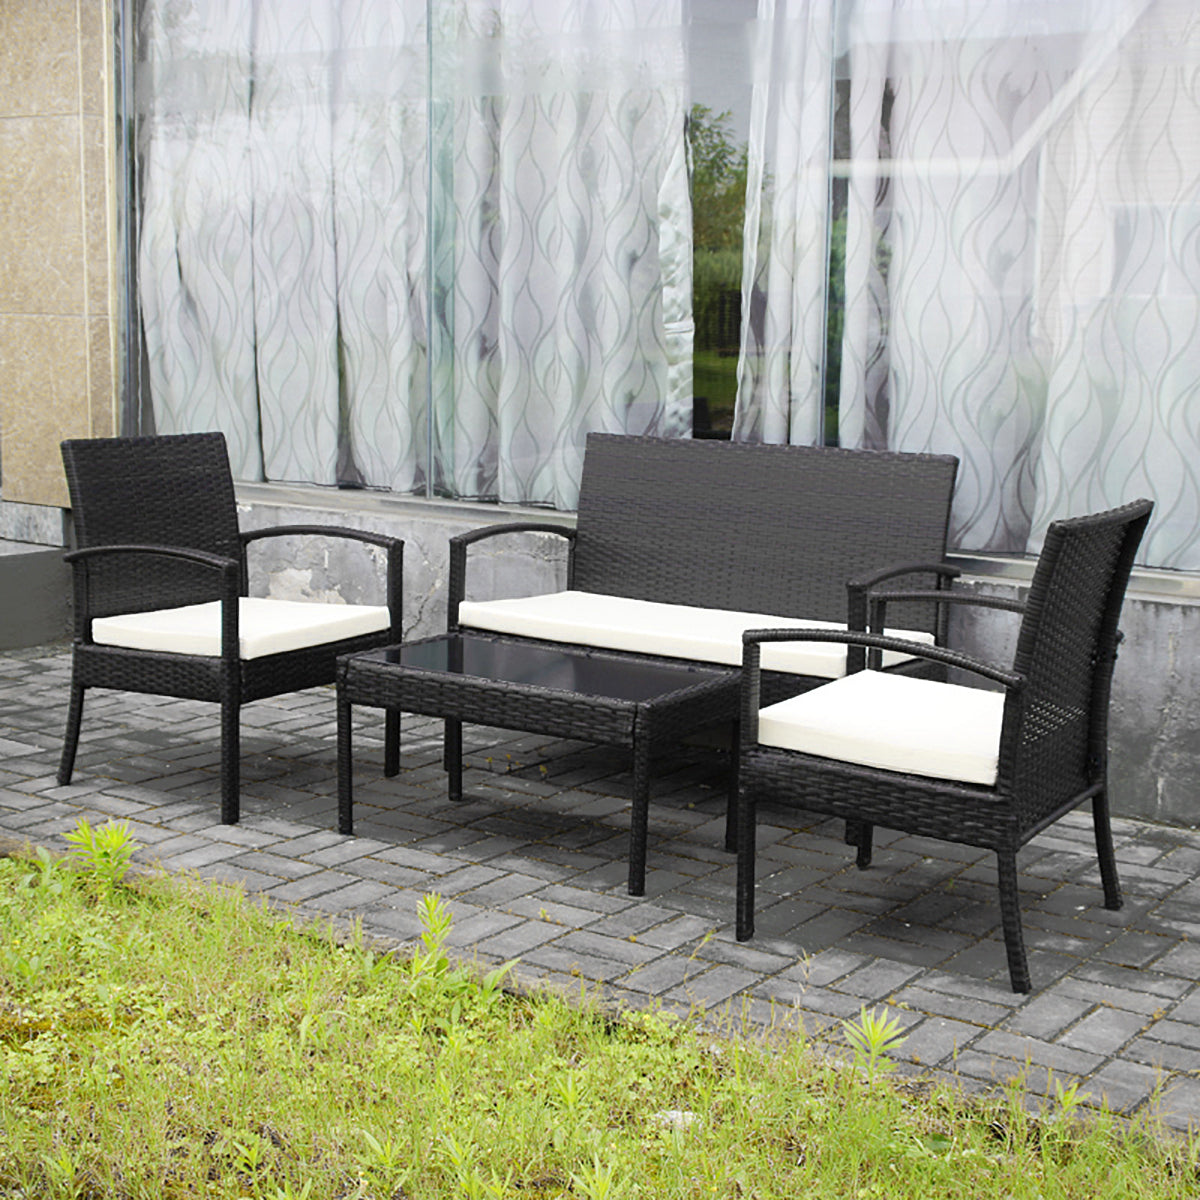 Picture of: Mcombo 4 Piece Aluminum Wicker Outdoor Patio Furniture Sectional Chair